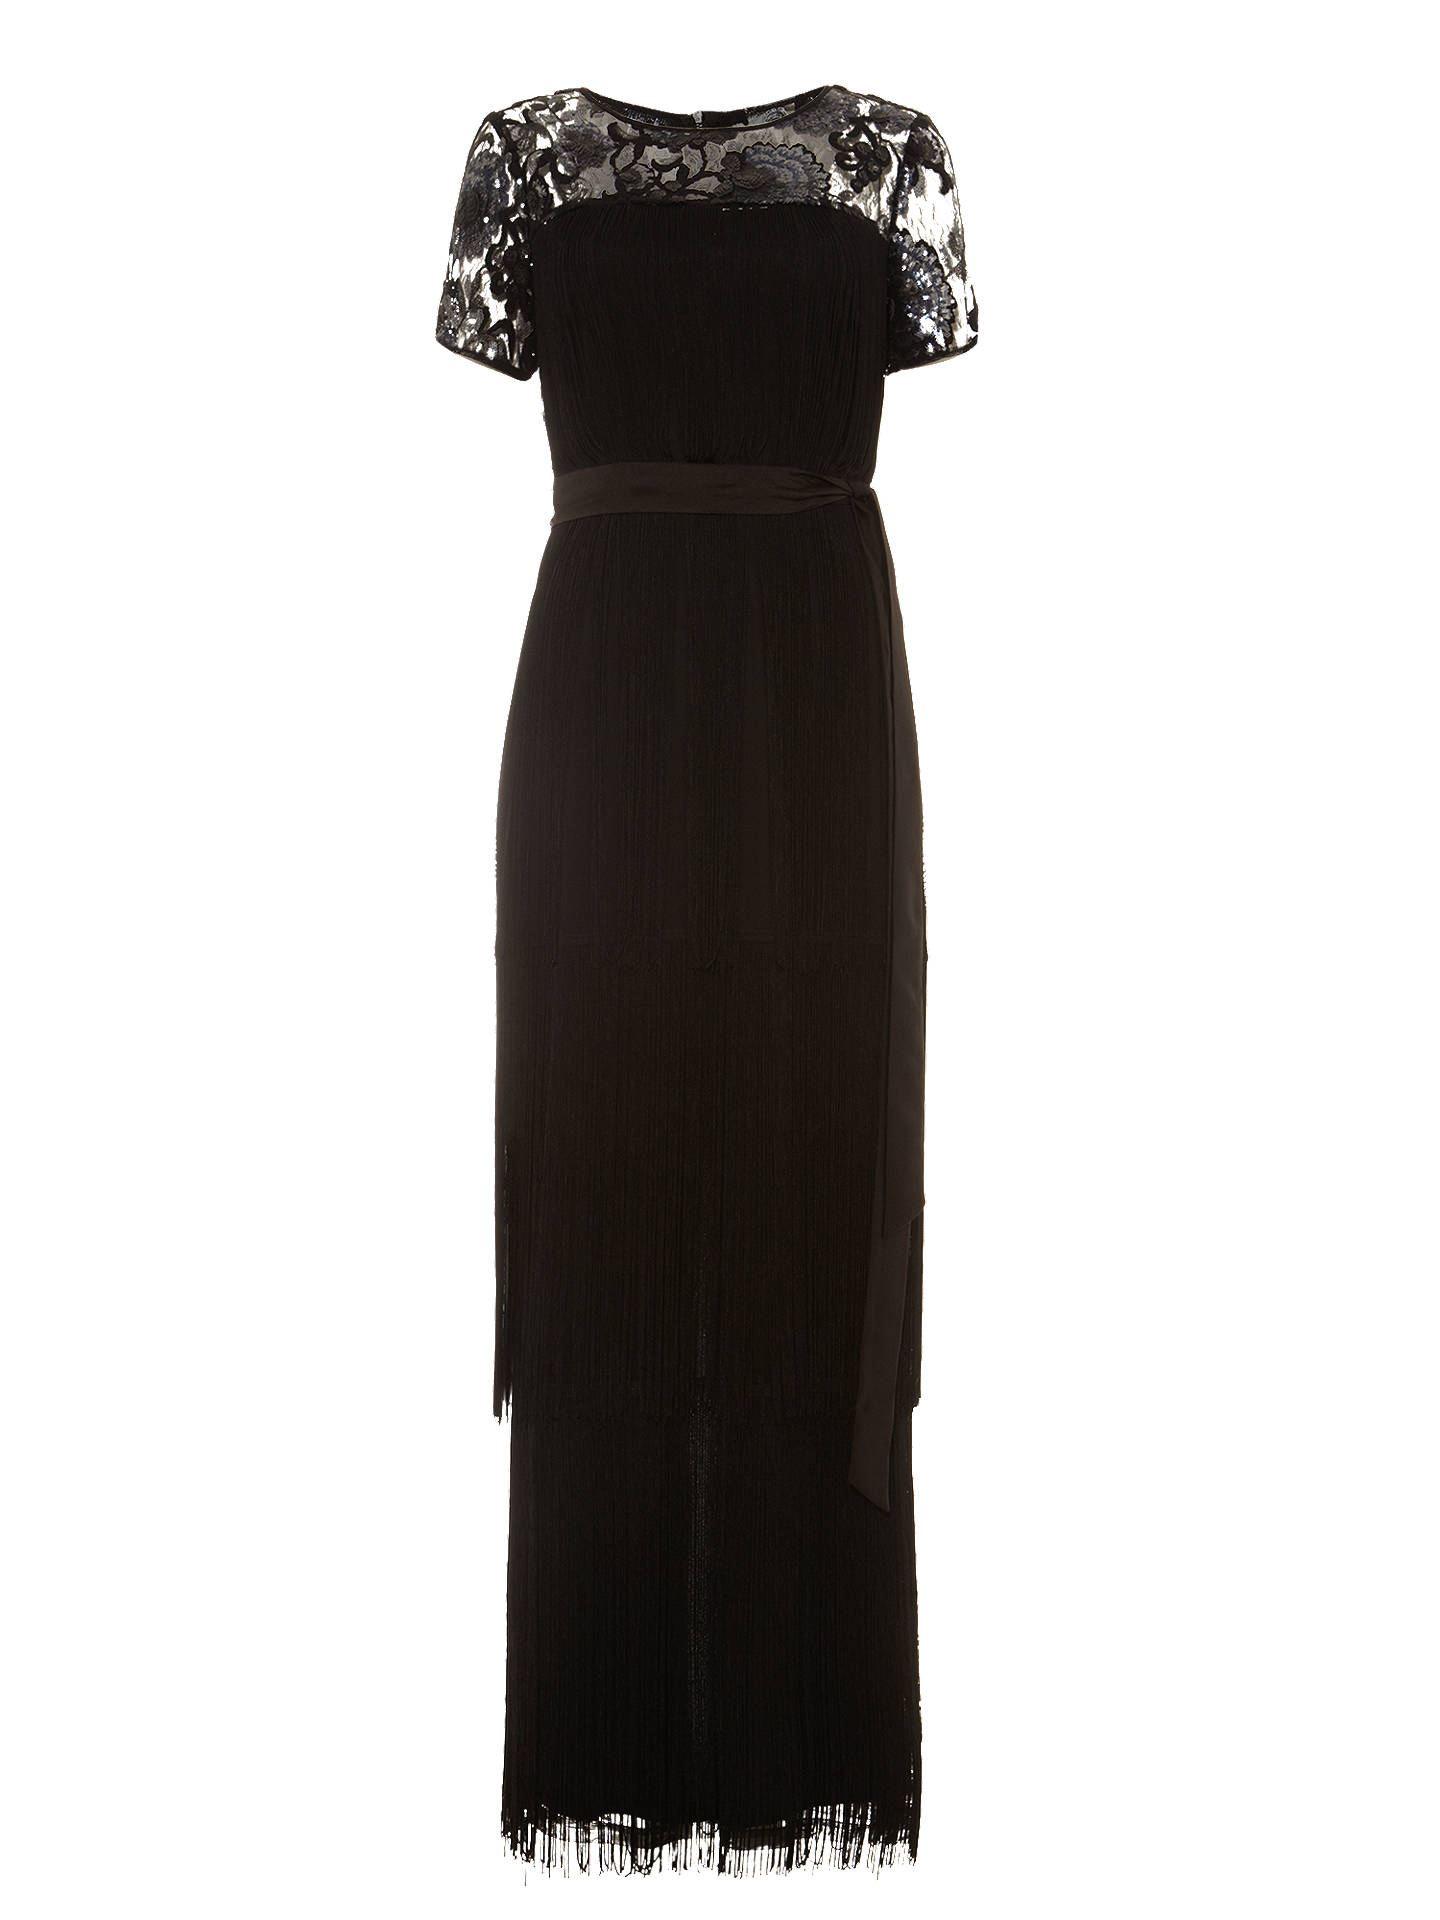 463ea8e78d Buy Phase Eight Malene Fringed Full Length Dress, Black, 6 Online at  johnlewis.